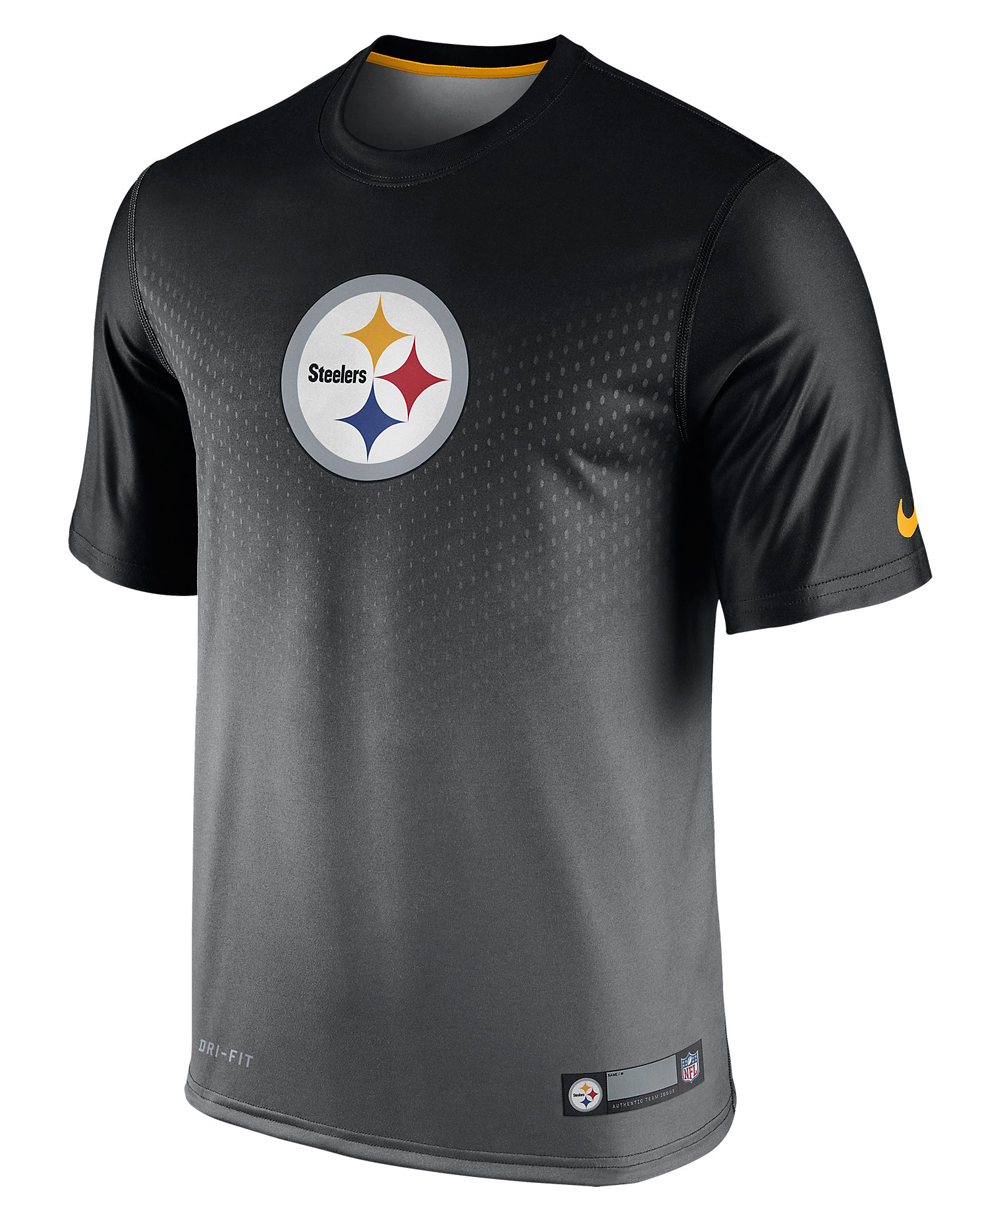 9dcab656e9d Nike Men's Short Sleeve T-Shirt Legend Sideline NFL Pittsburgh Stee...